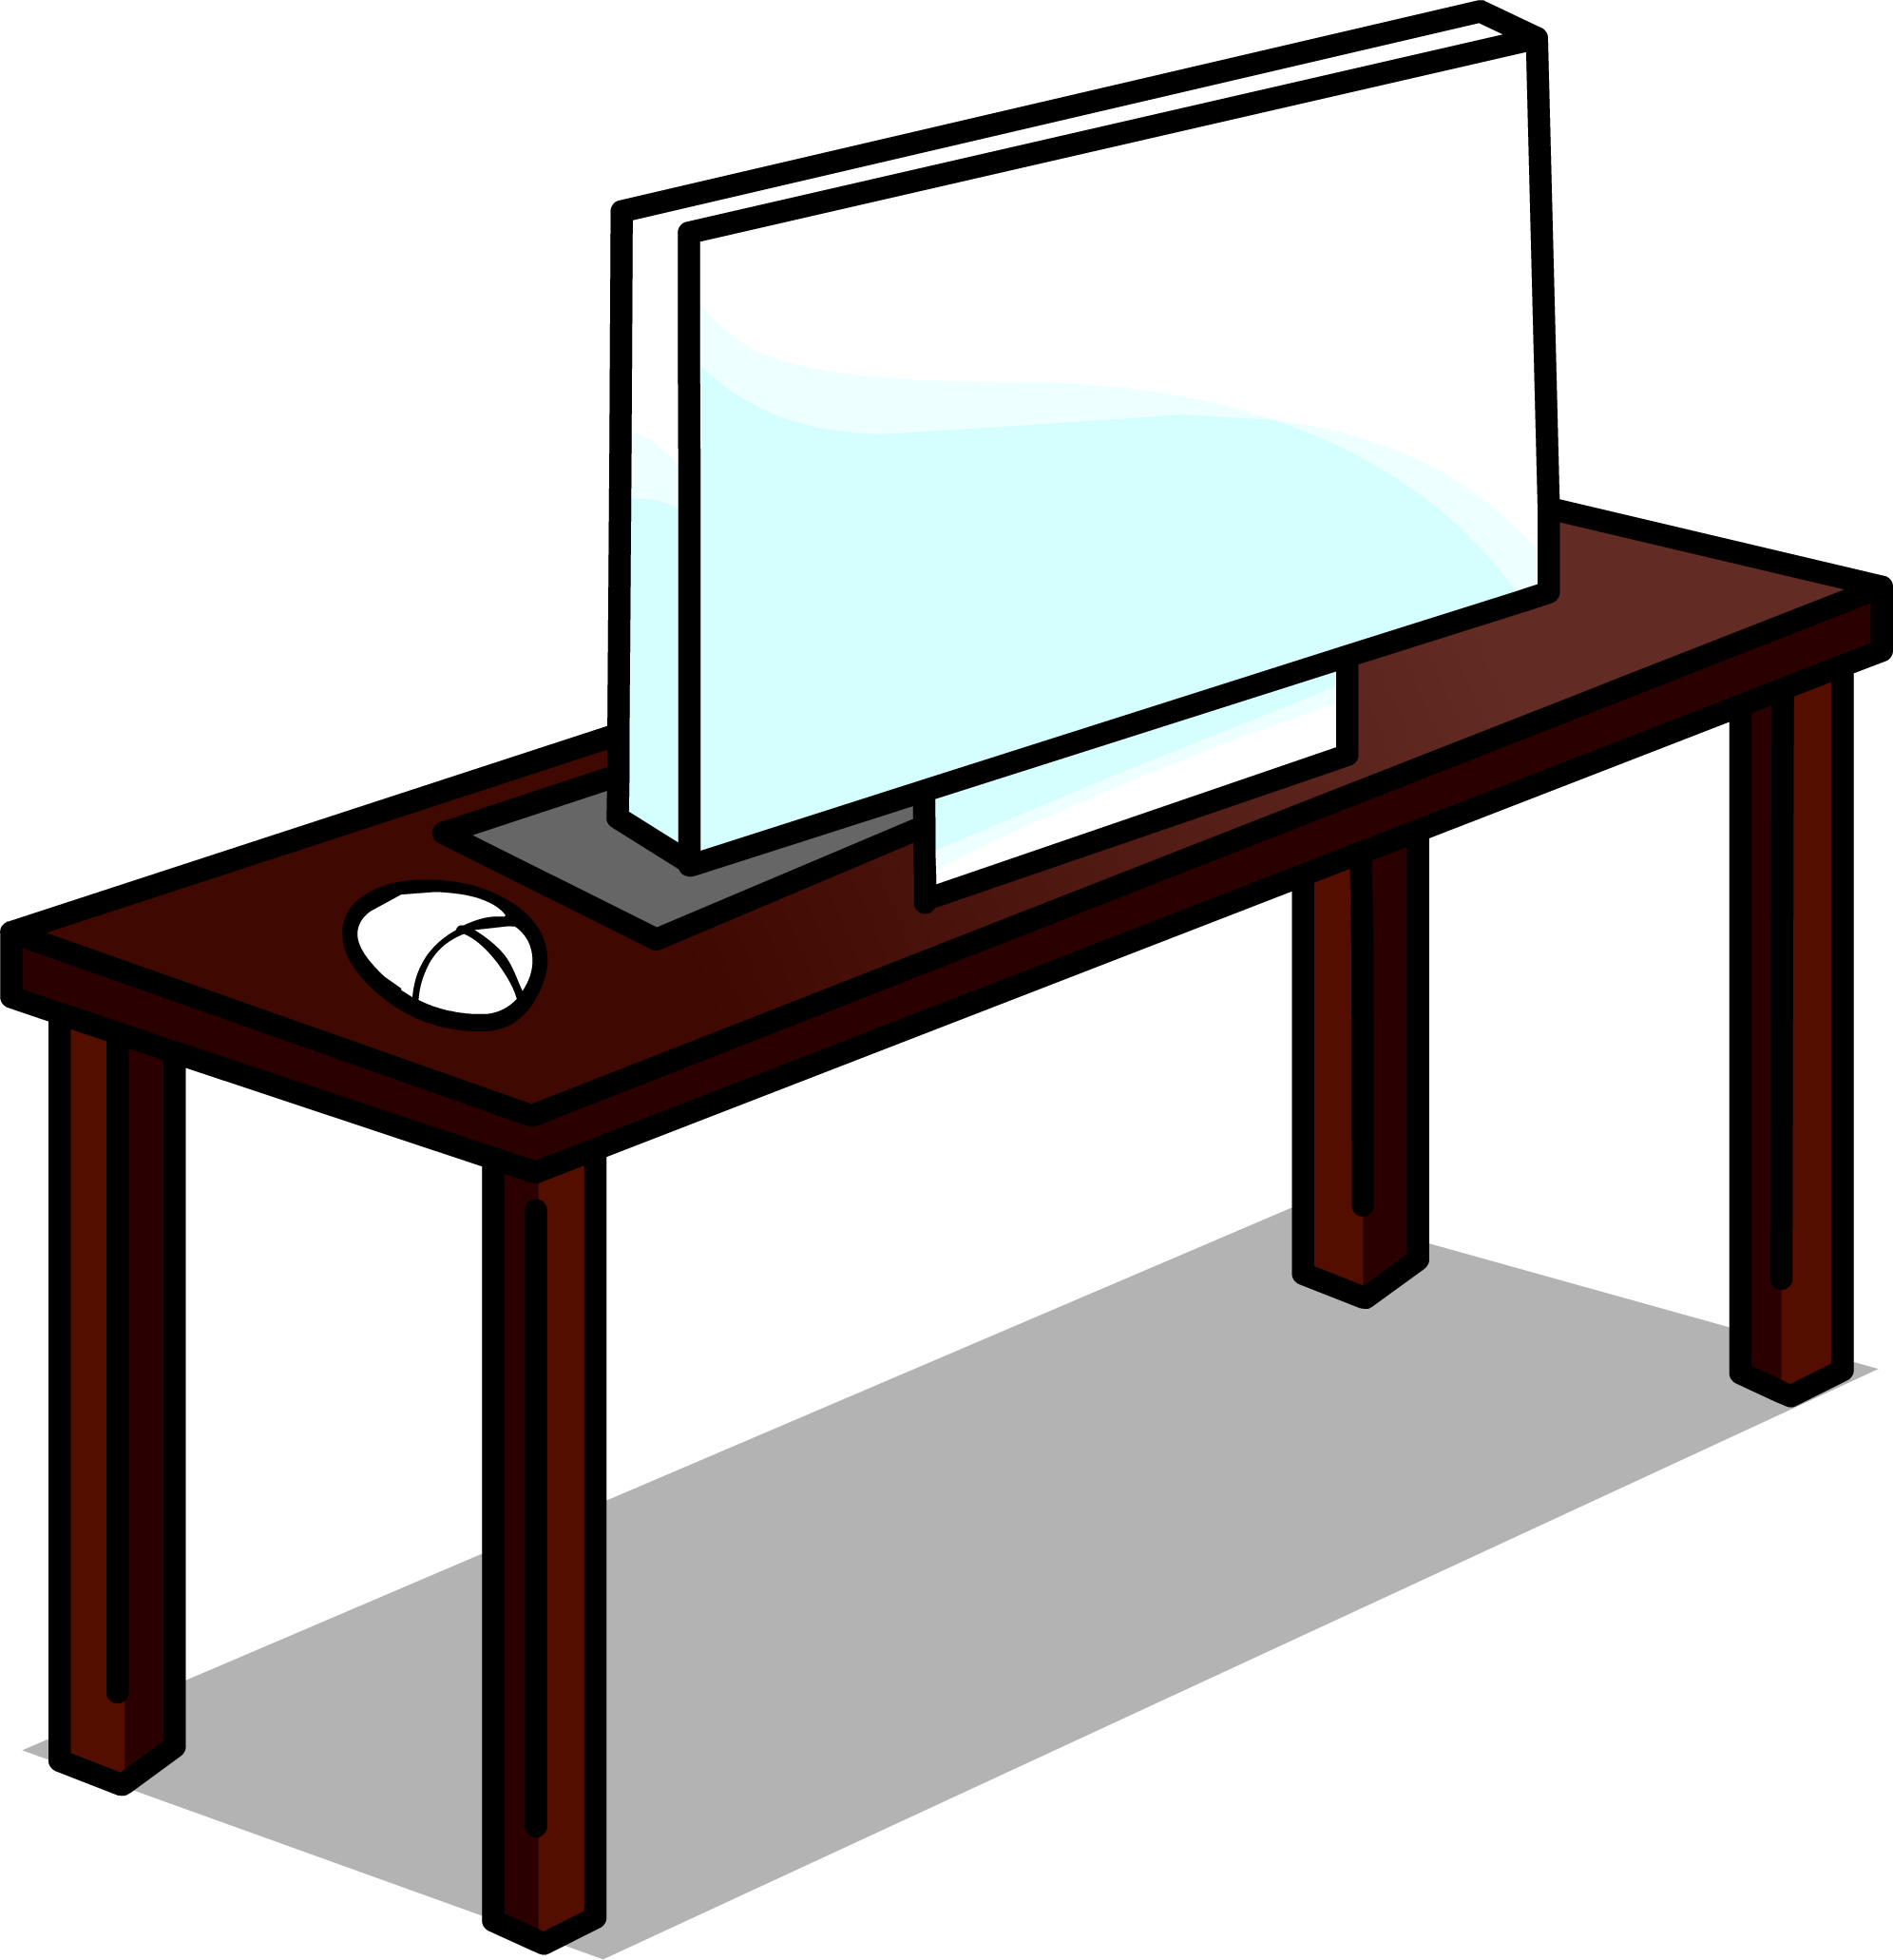 Image desk sprite png. Furniture clipart computer table